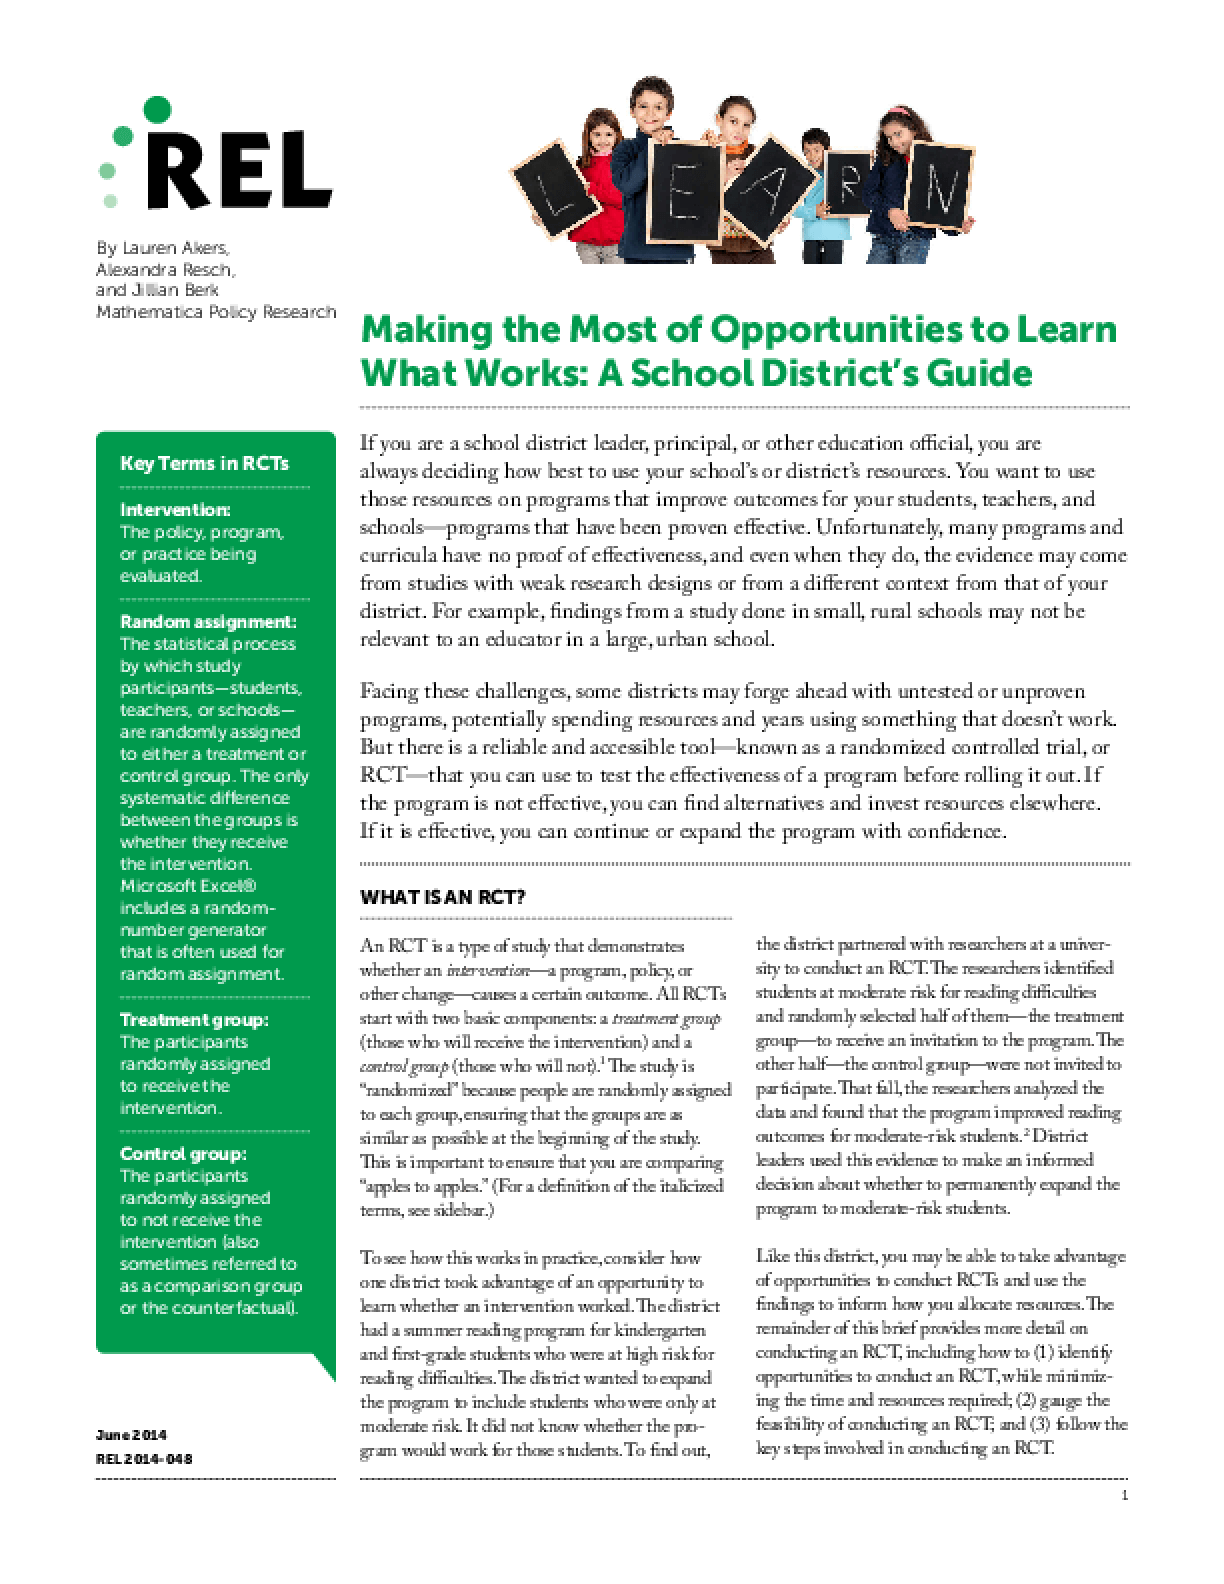 Making the Most of Opportunities to Learn What Works: A School District's Guide